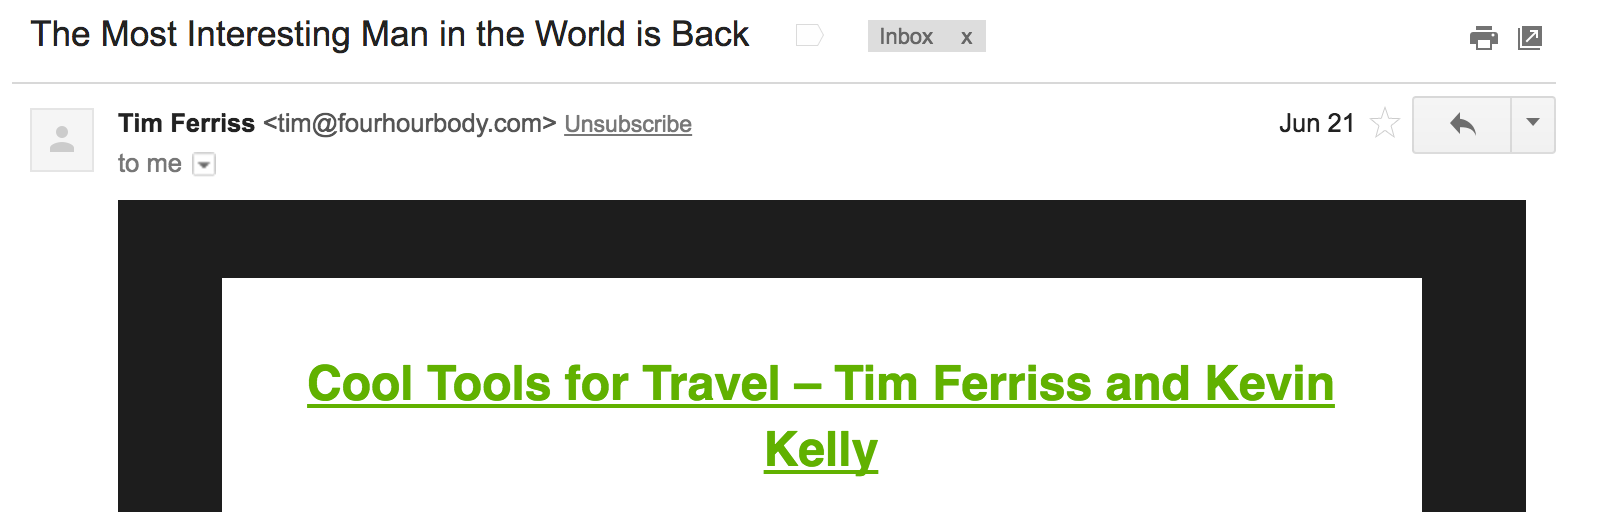 Best Email Subject Lines: Screenshot of email from Tim Ferriss